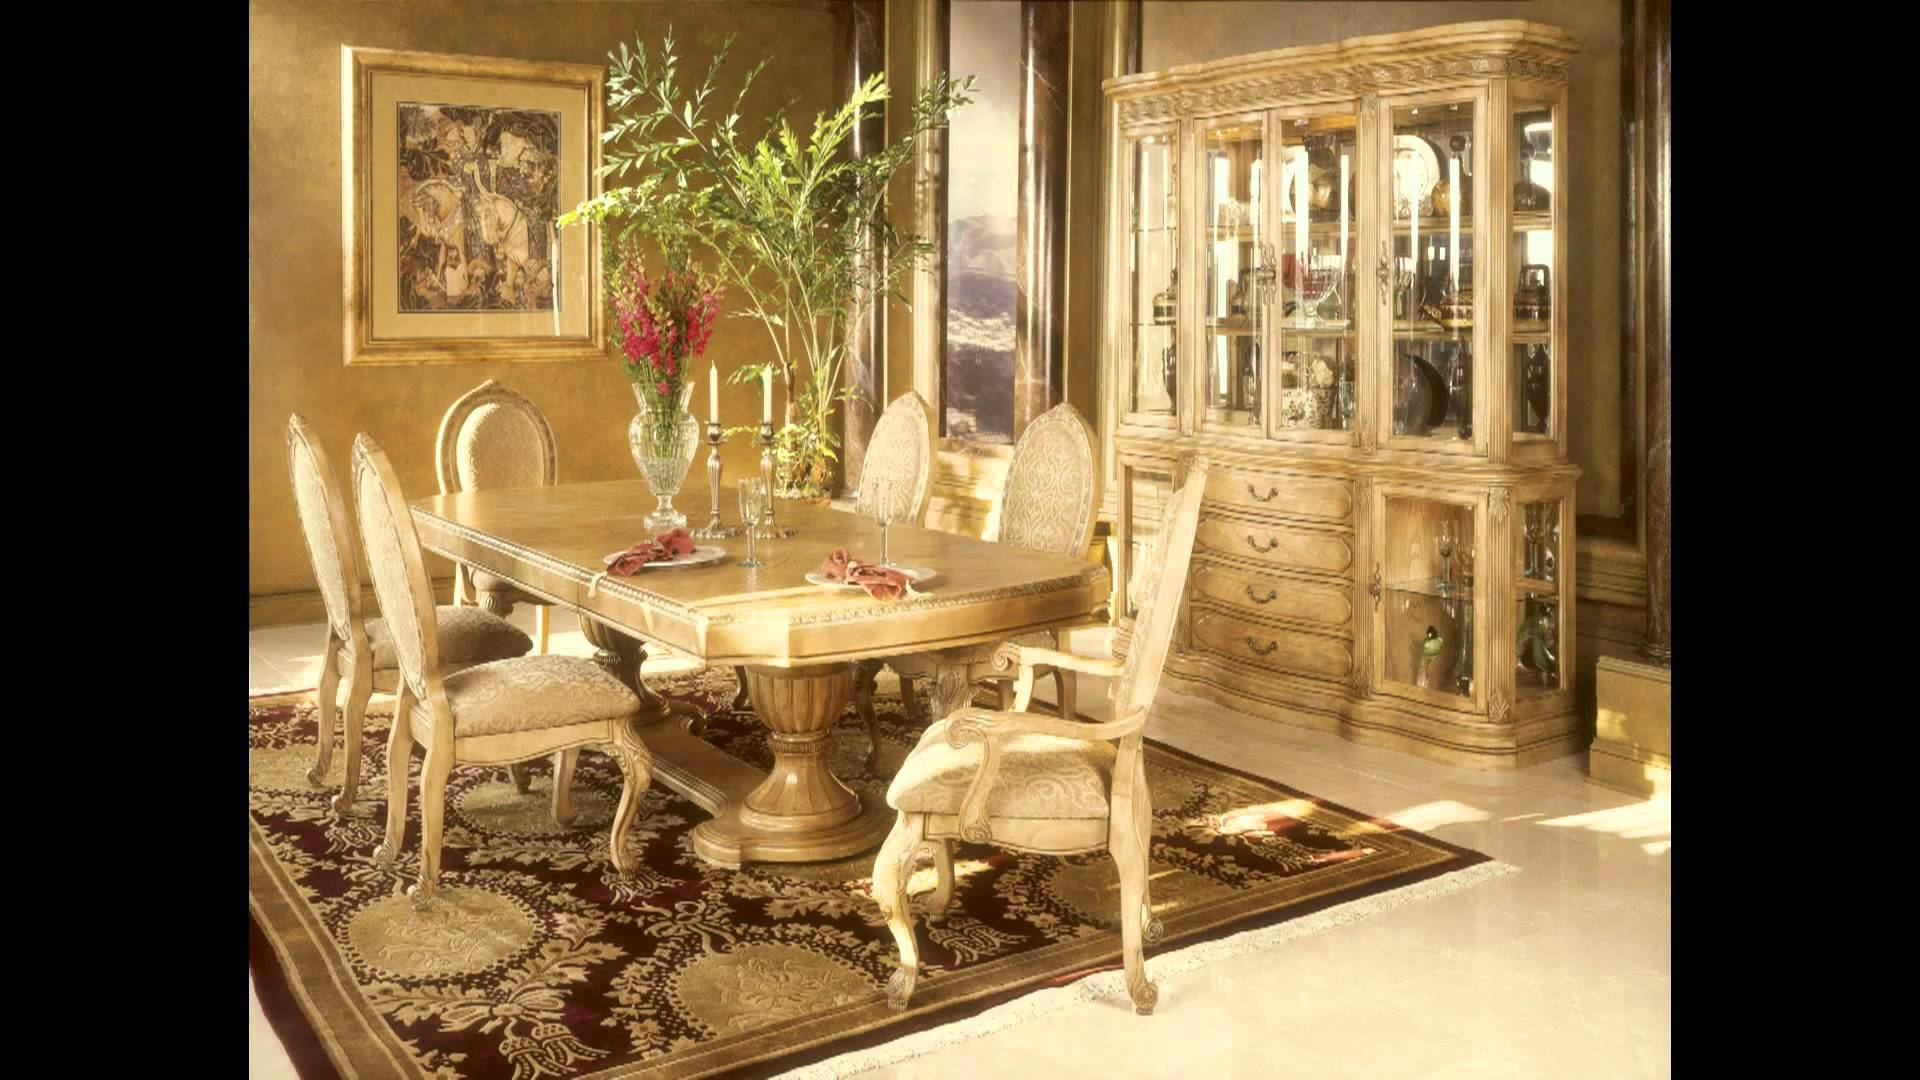 charming cream dining table set by aico furniture on floral rug for dining room decor ideas